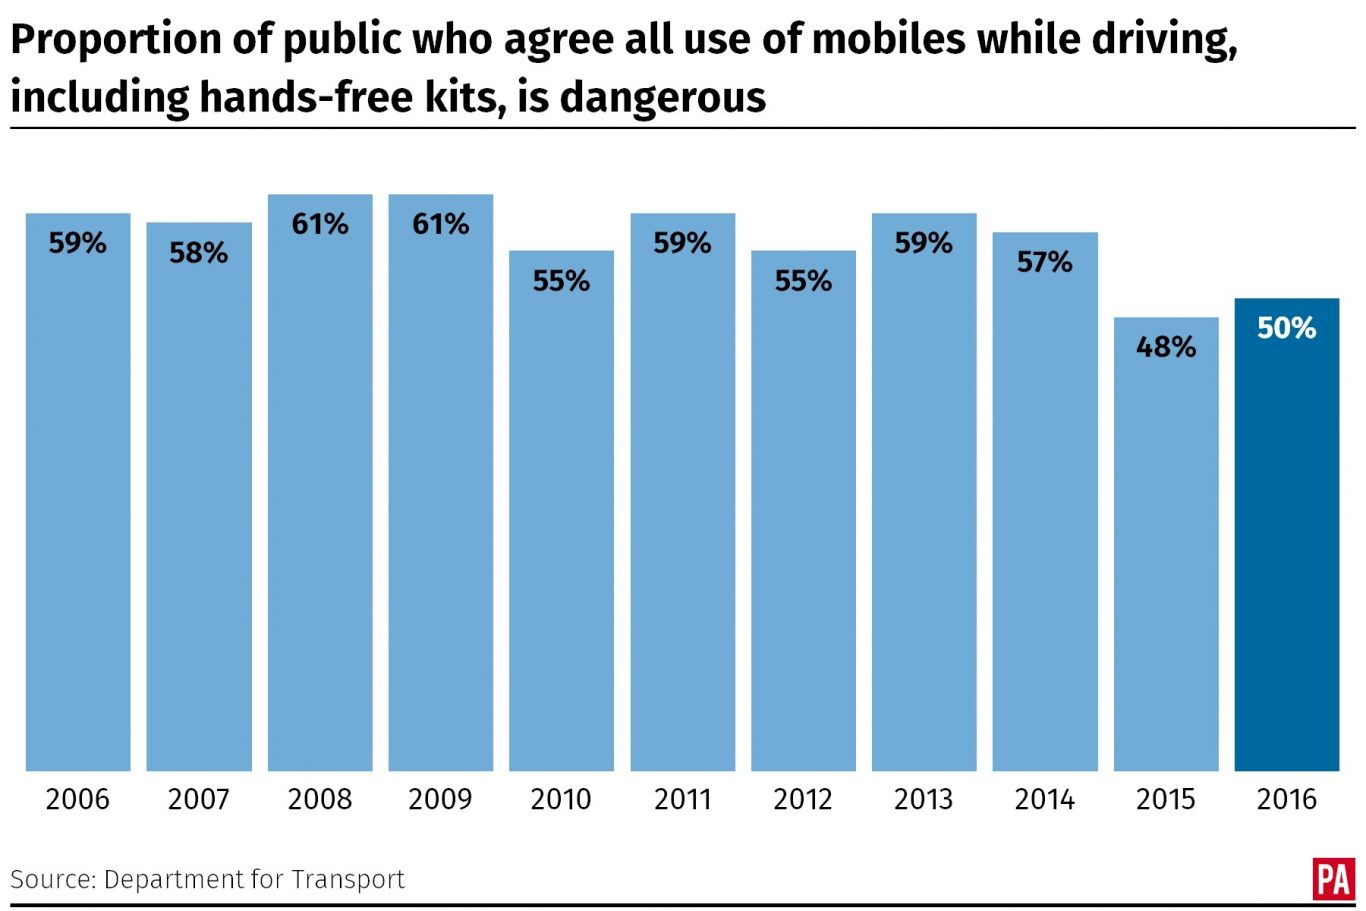 Proportion of public who agree all use of mobiles while driving, including hands-free kits, is dangerous